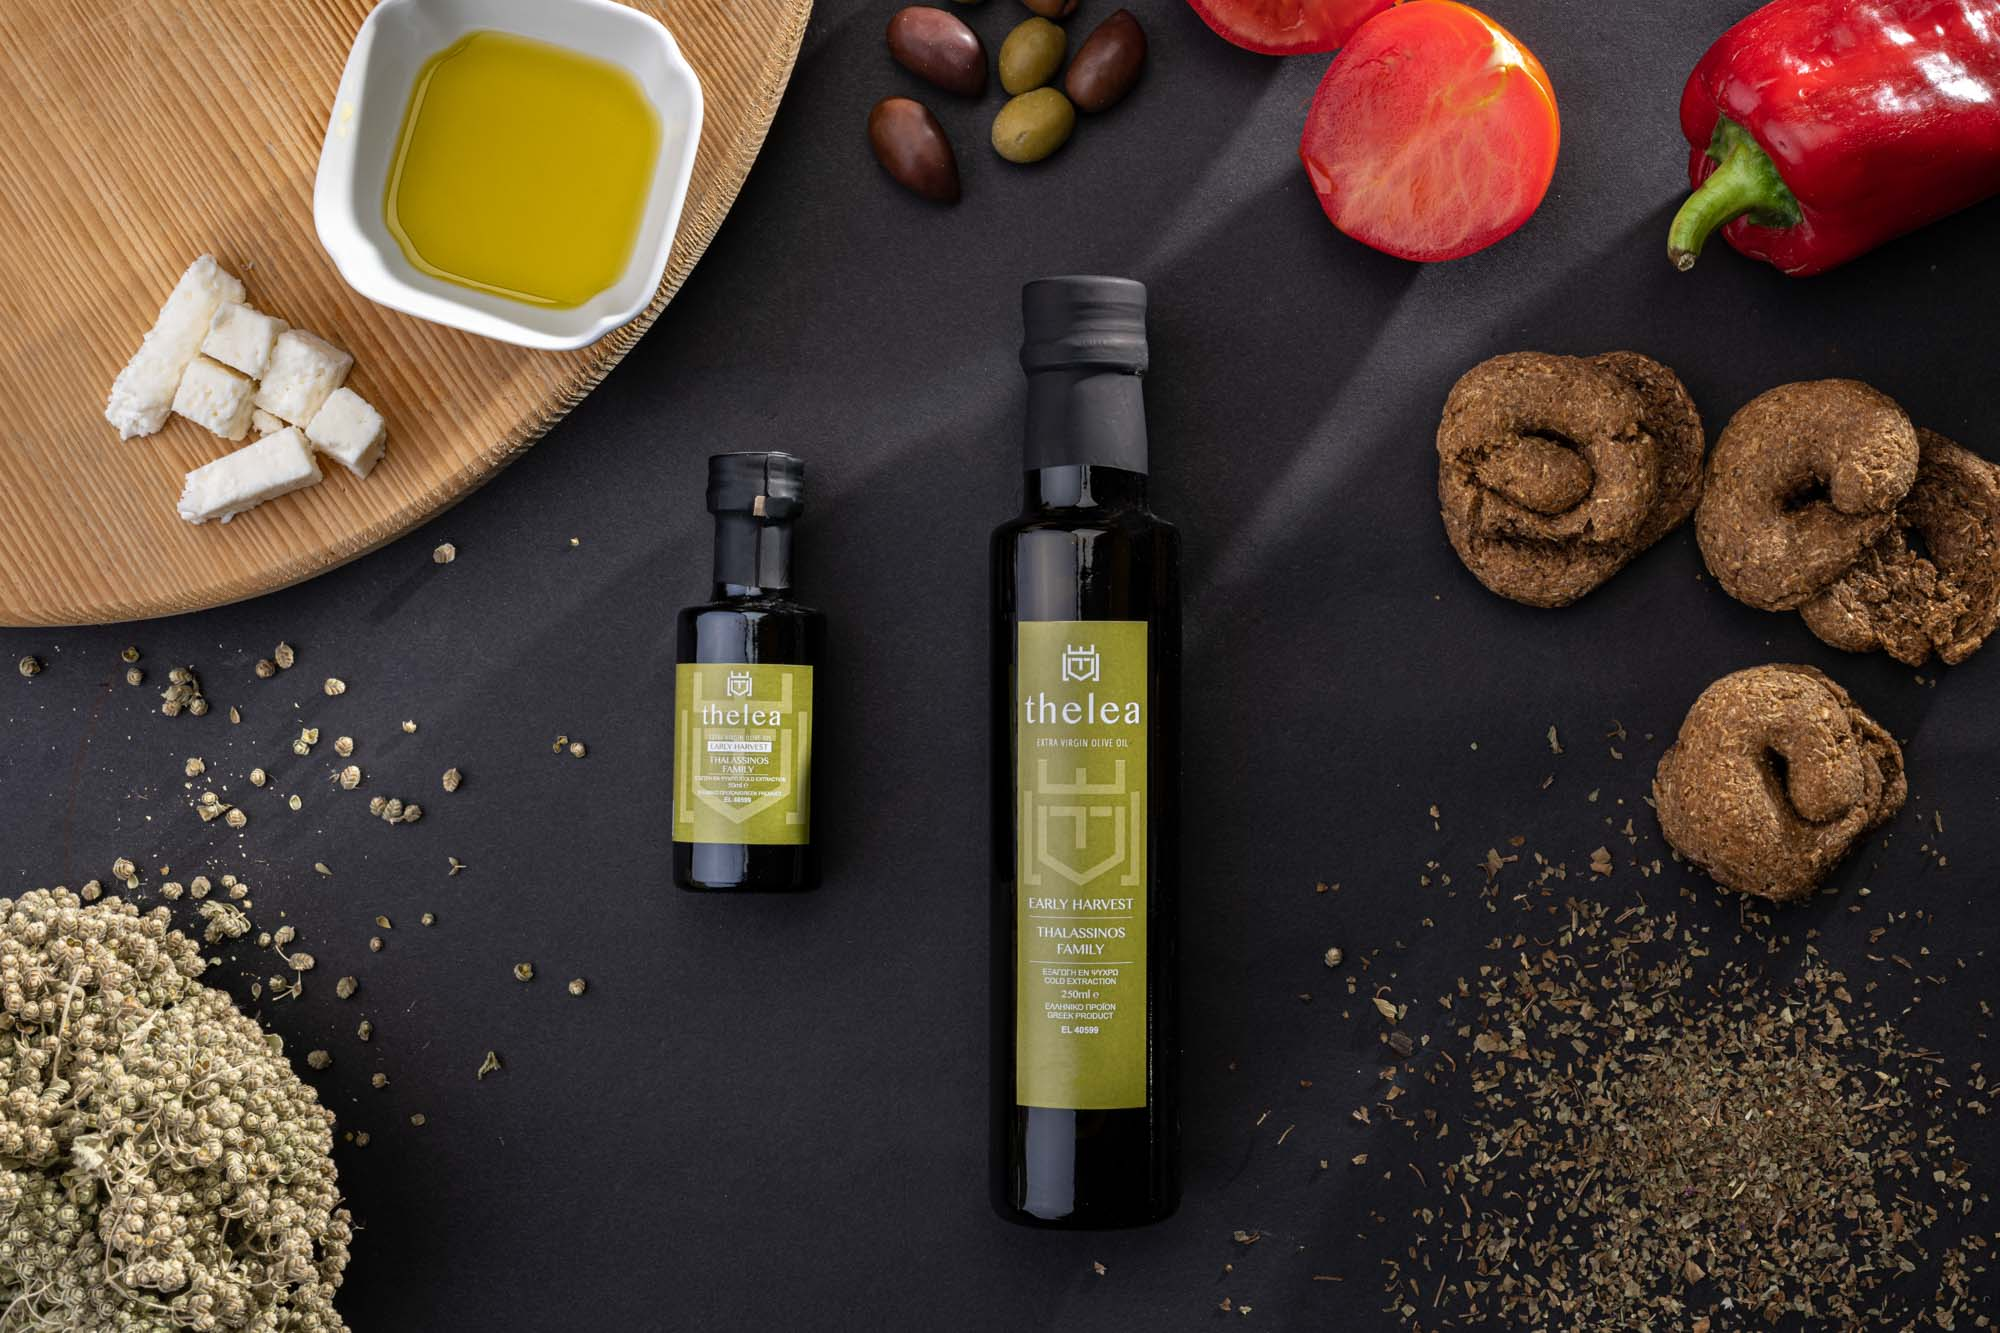 Thelea olive oil Early harvest 250ml & 50ml